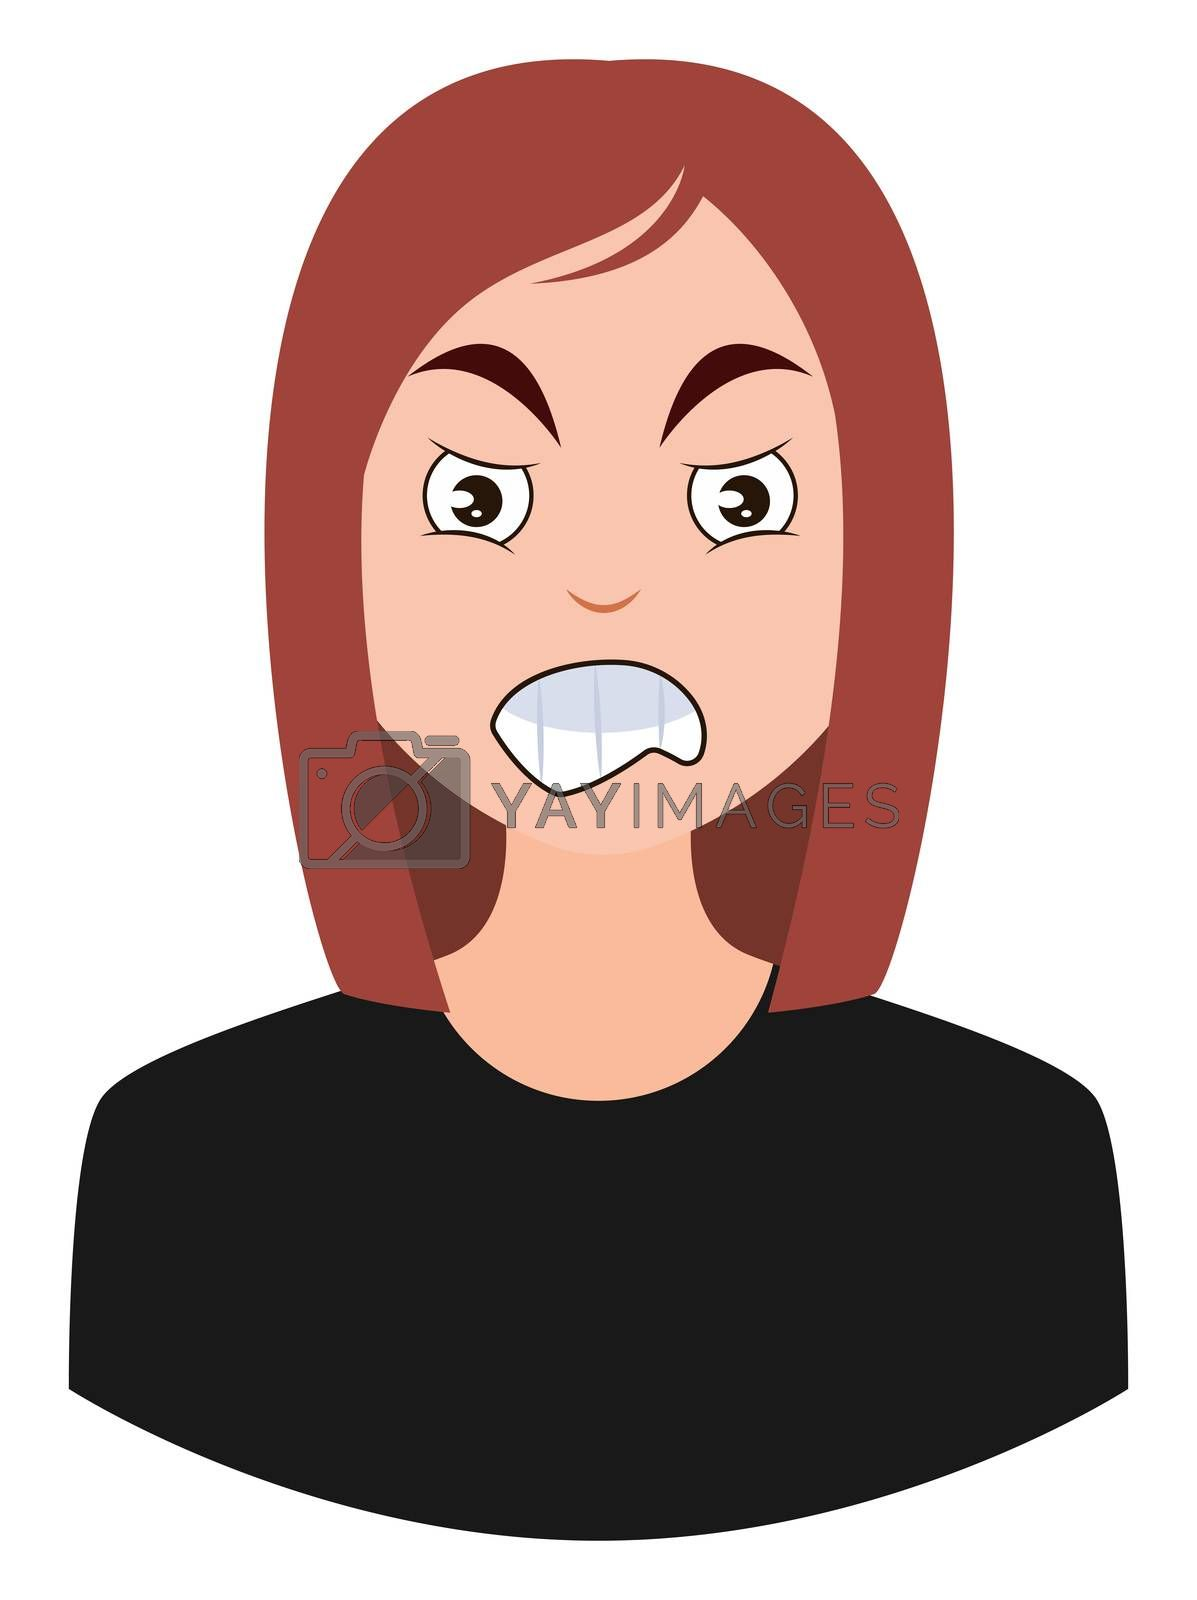 Royalty free image of Pissed off girl, illustration, vector on white background by Morphart